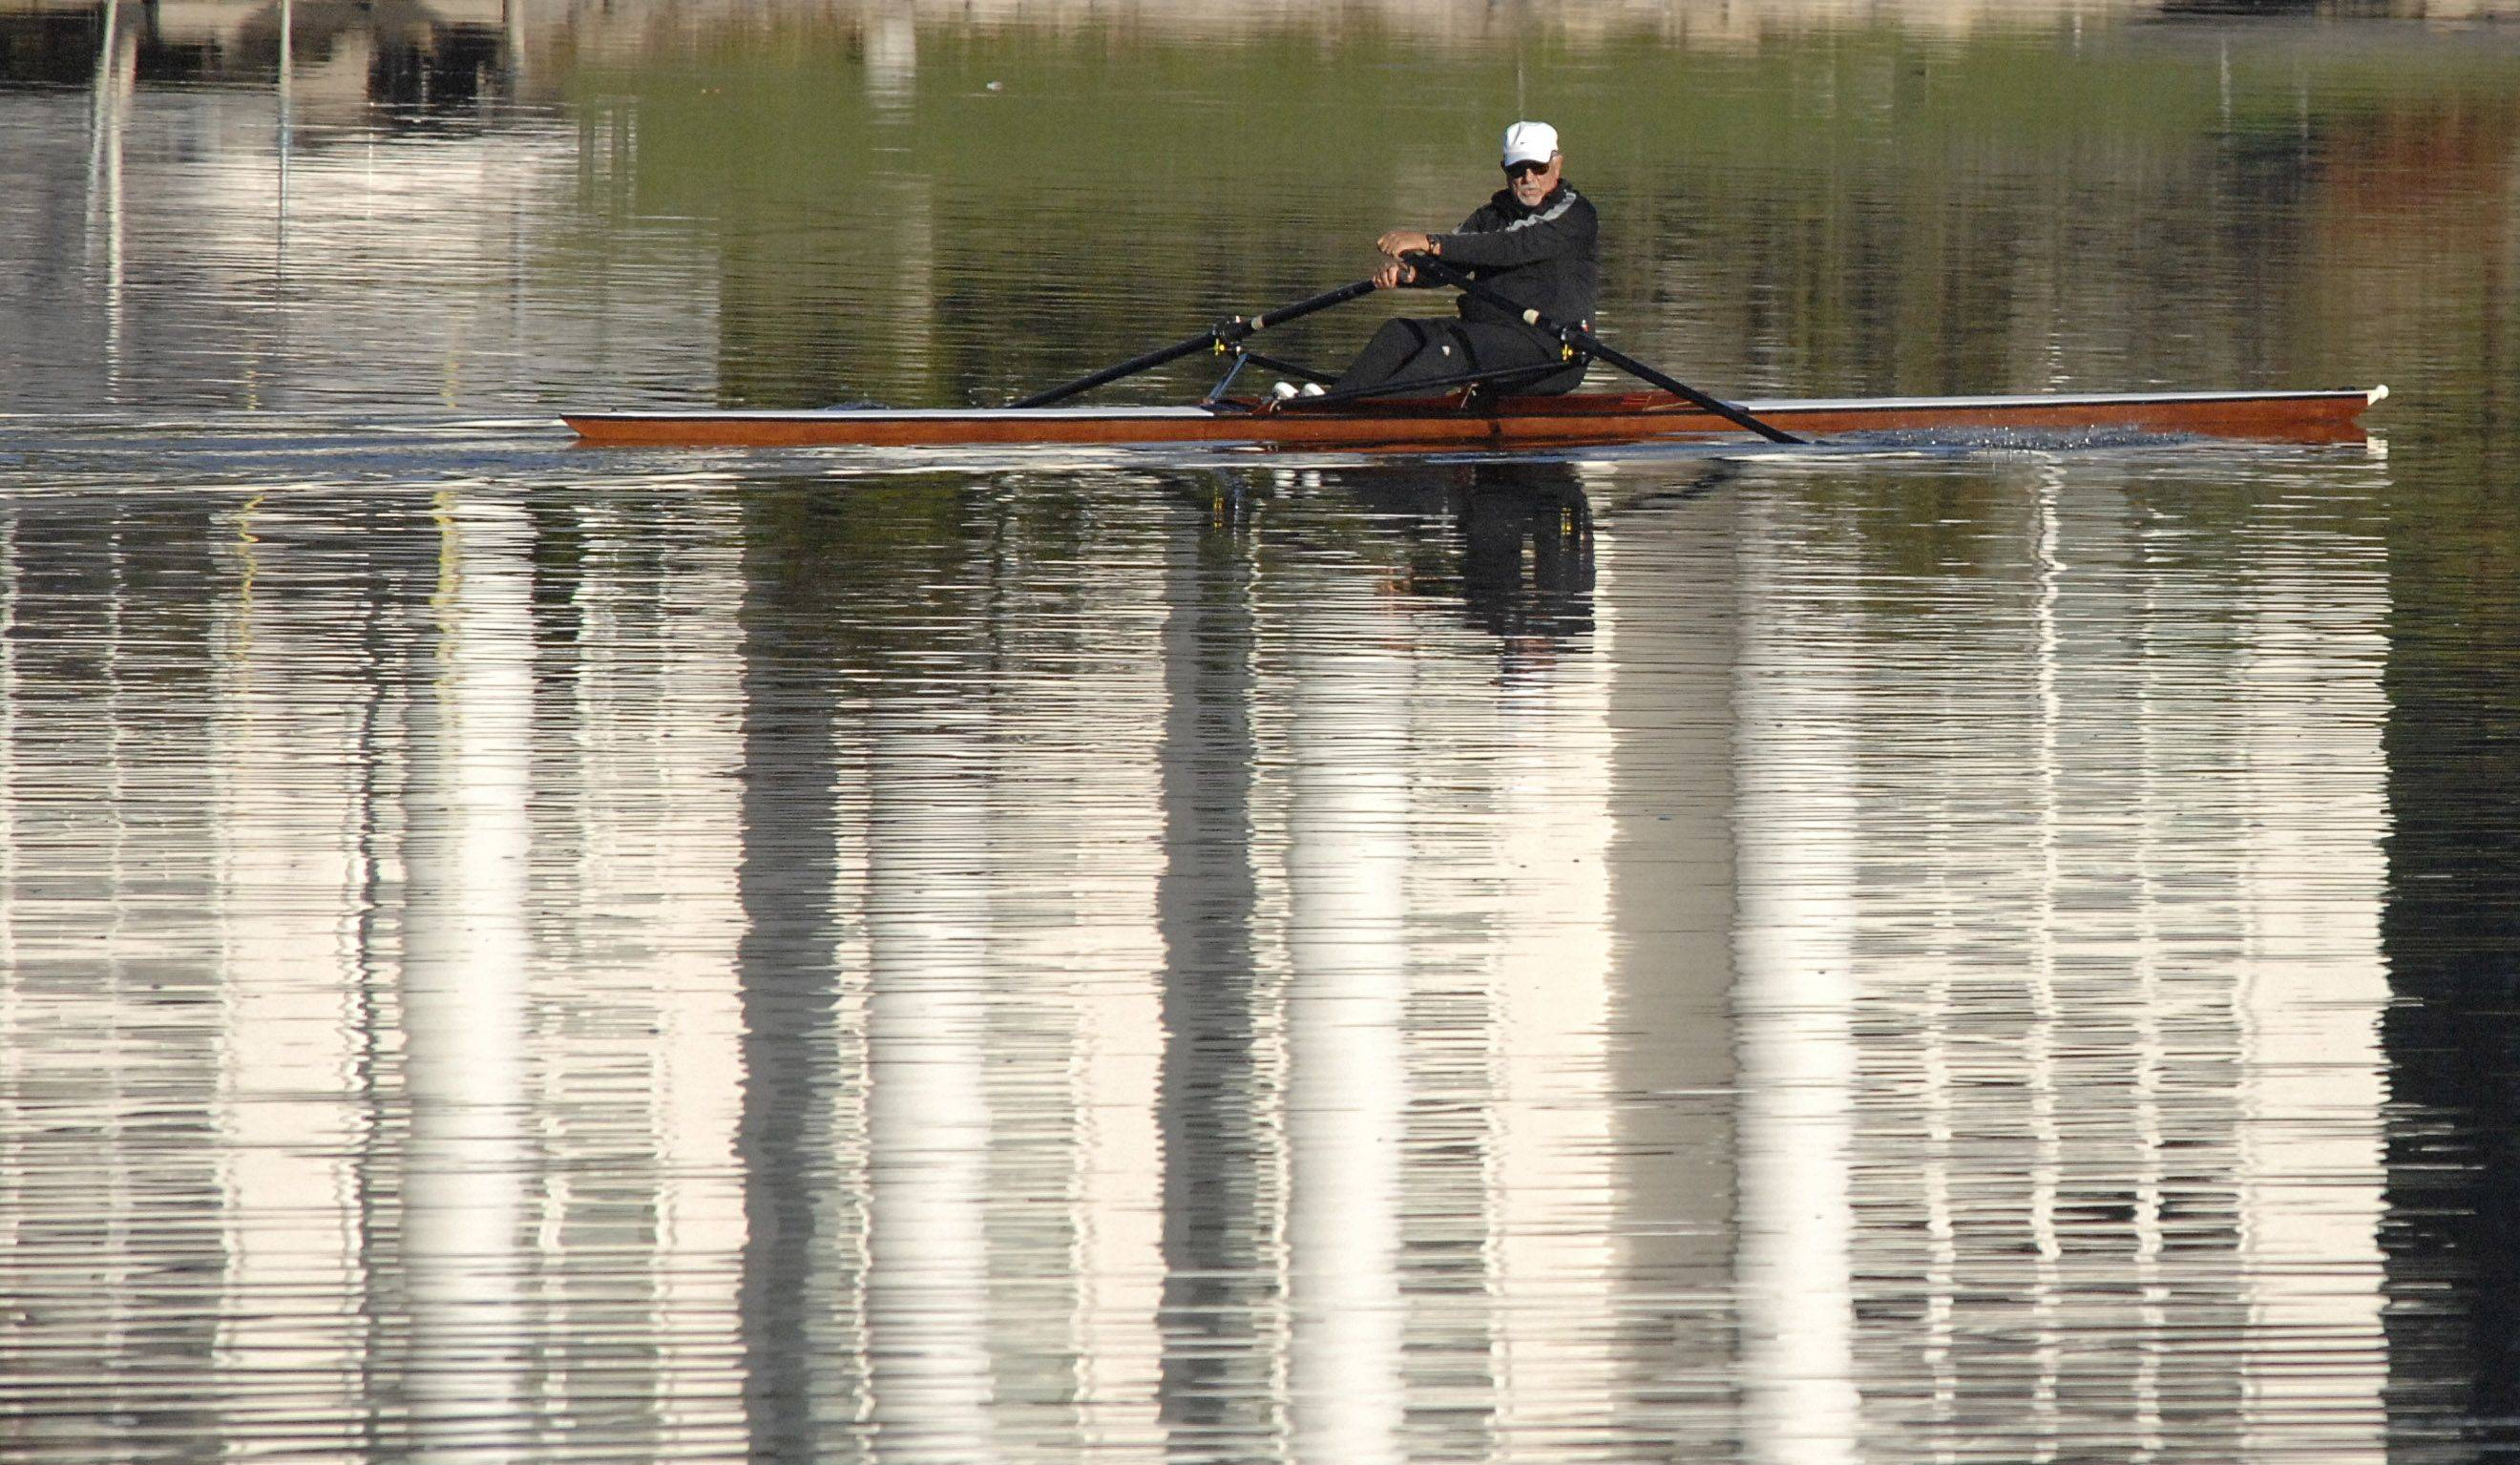 A rower makes his way down the Fox River in Geneva early Wednesday morning, October 6. The white reflected in the water is from a home on the west bank of the river. This type of boat is call a single scull and they are sometimes used for exercise by people who enjoy rowing.